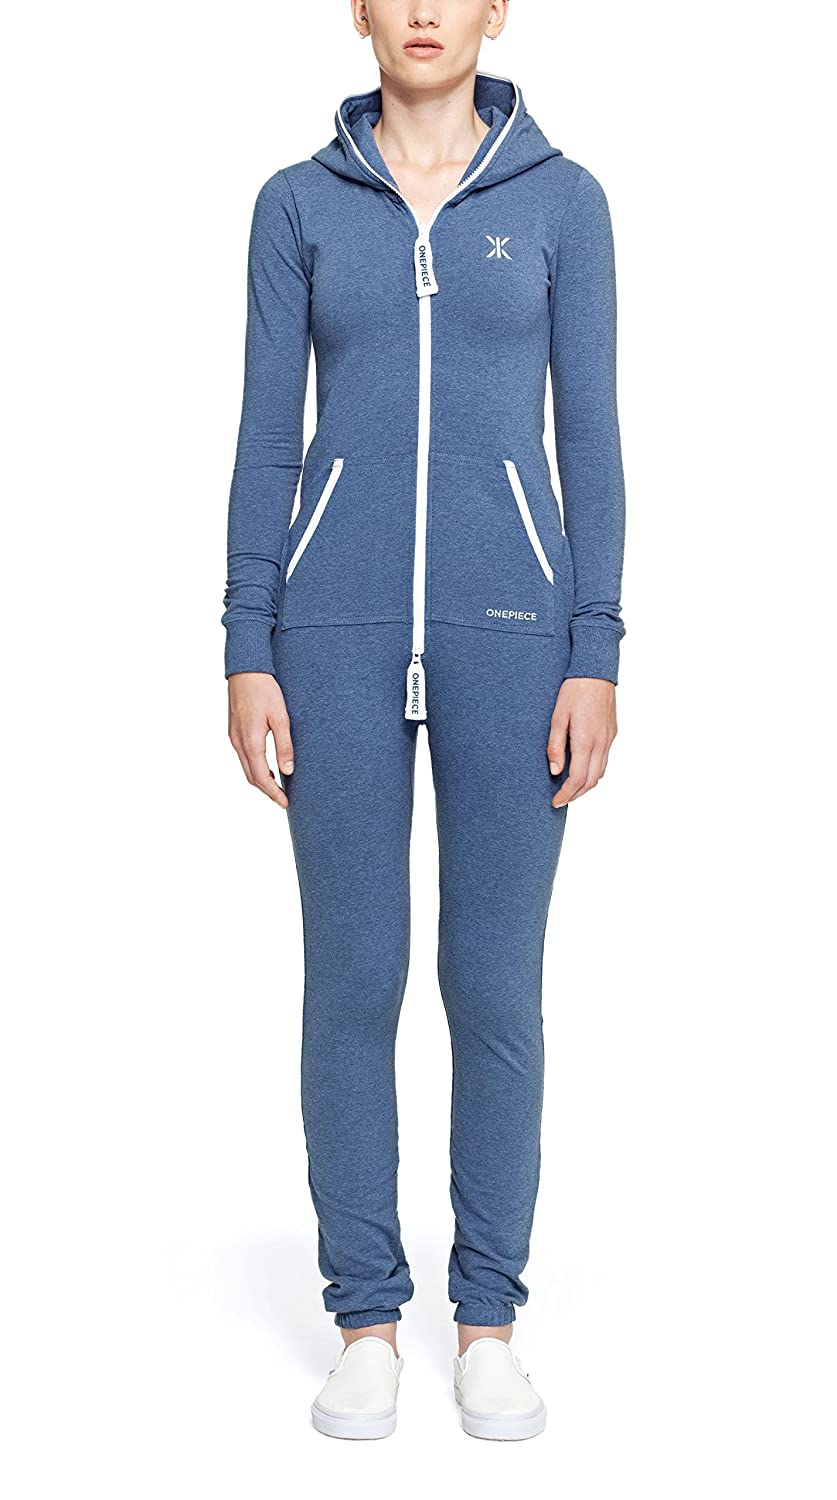 One Piece - Jumpsuit Orignal Slim, Pagliaccetti OnePiece P-AW14014